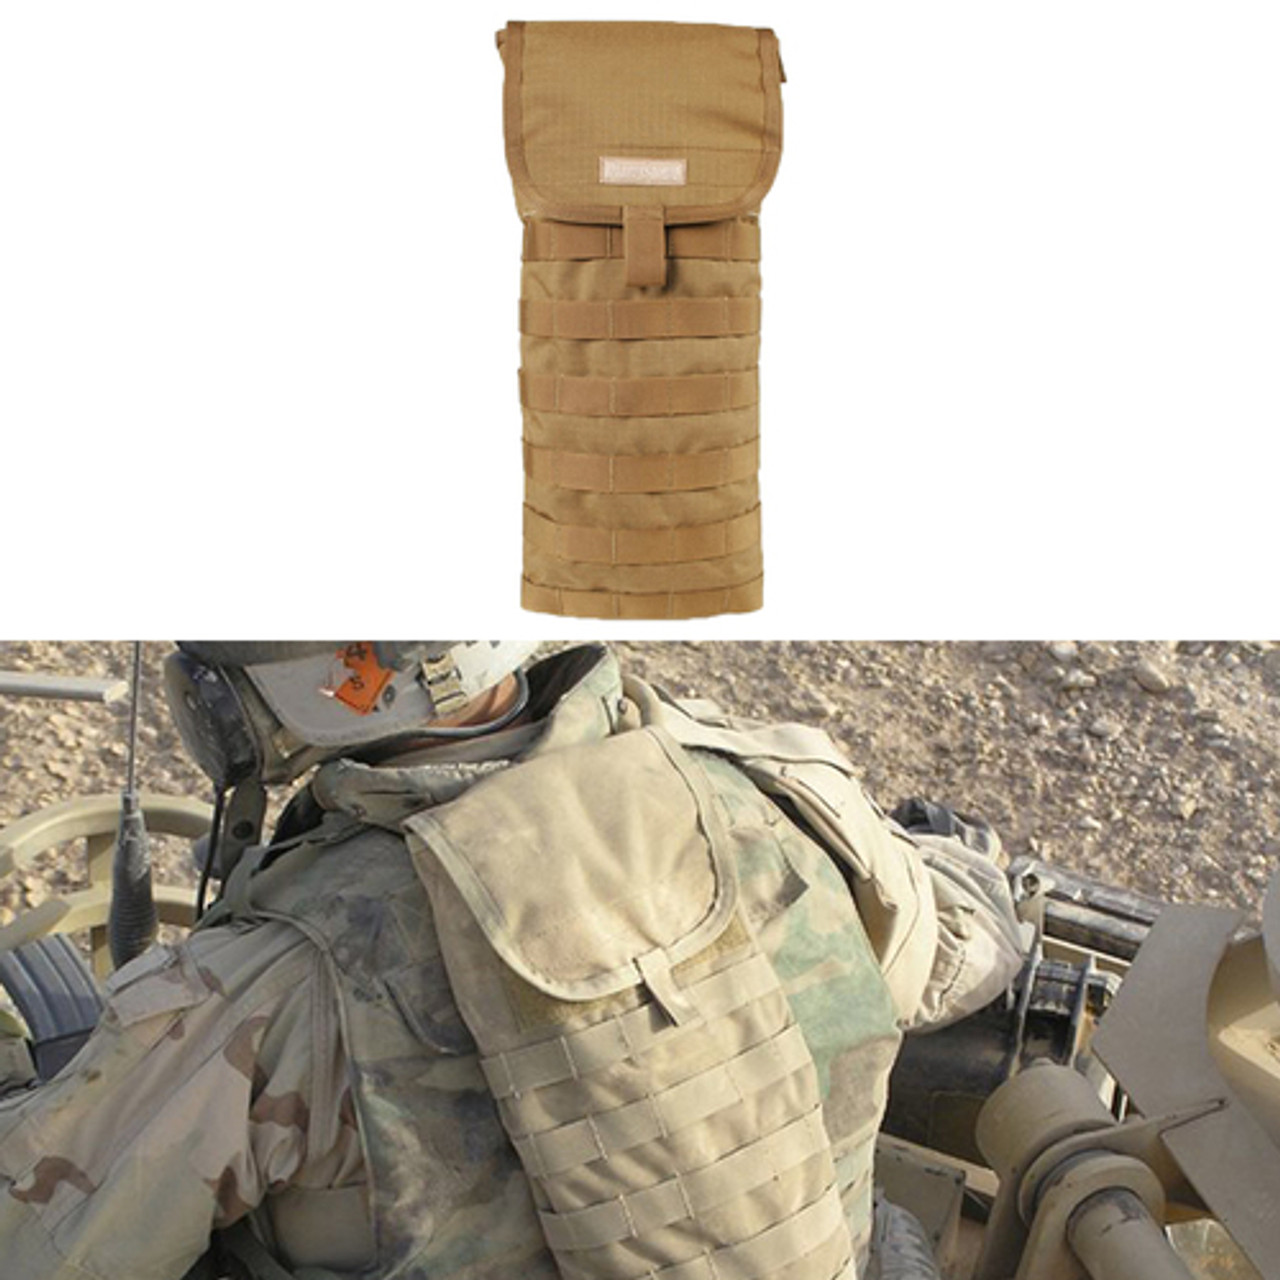 BLACKHAWK S.T.R.I.K.E. HYDRATION SYSTEM CARRIER, Accommodates 100-oz hydration reservoir , S.T.R.I.K.E. webbing for attacking pouches or accessories, Coyote Tan, 38CL37CT